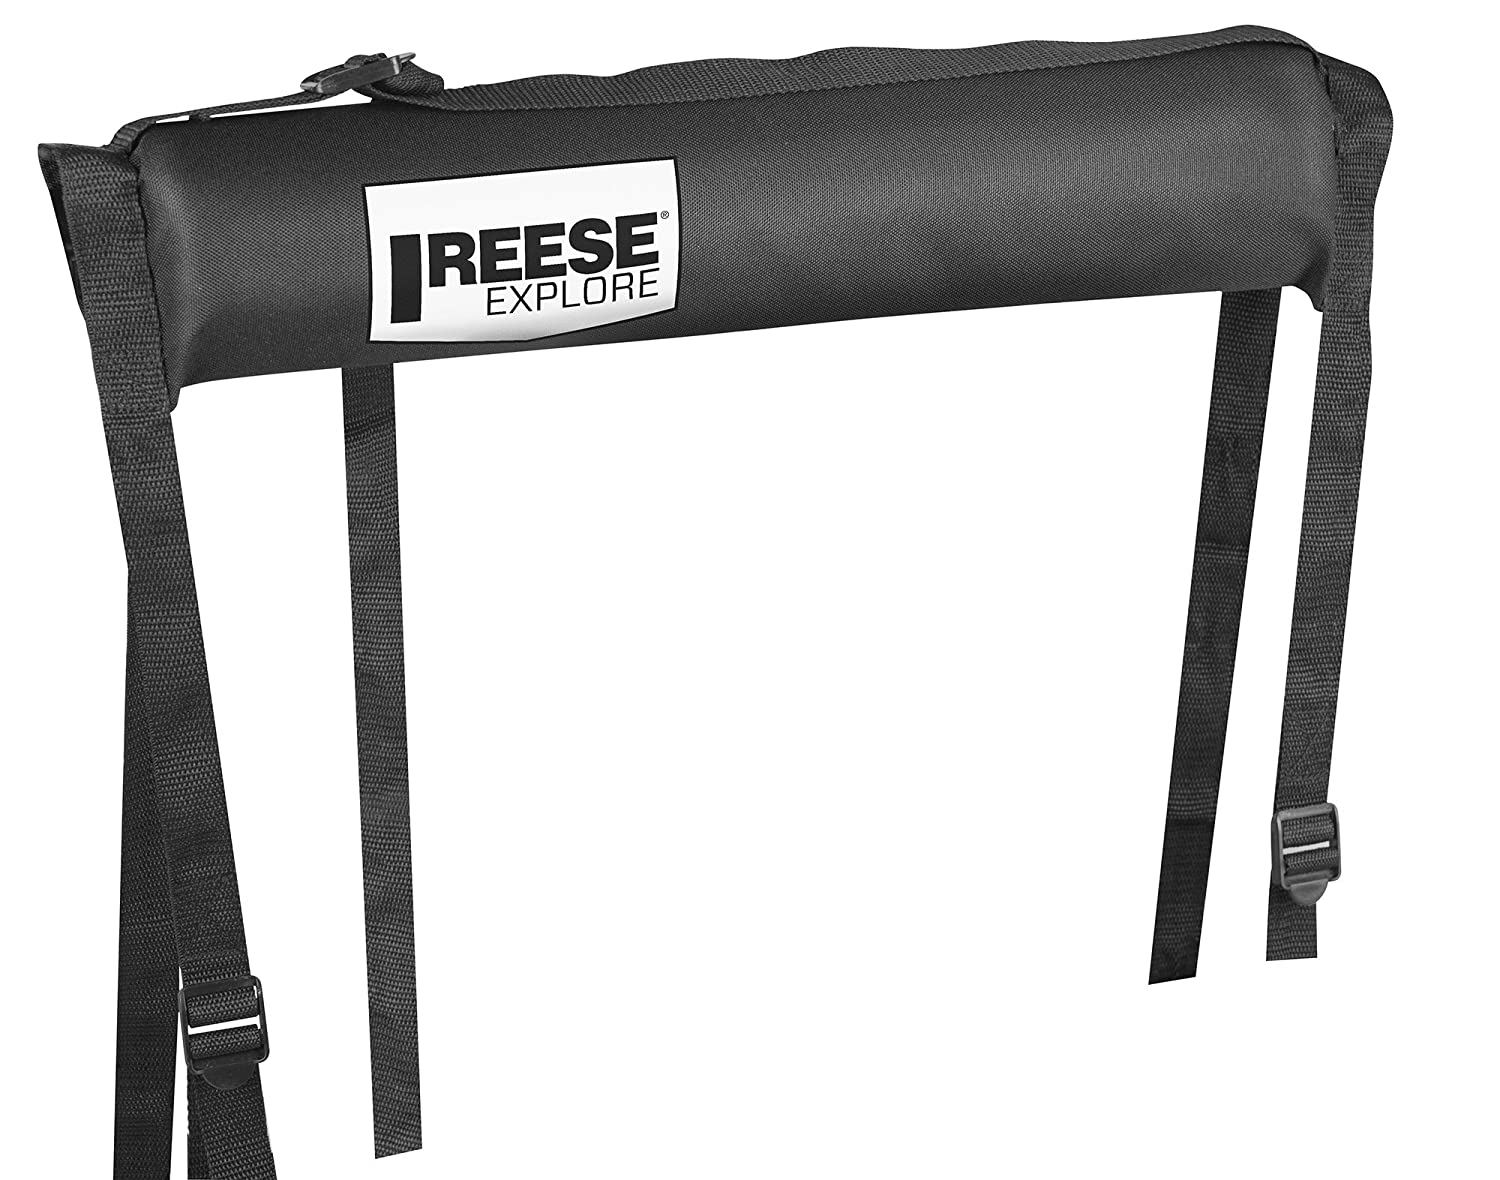 Reese Explore 1393600 54' Tailgate Pad